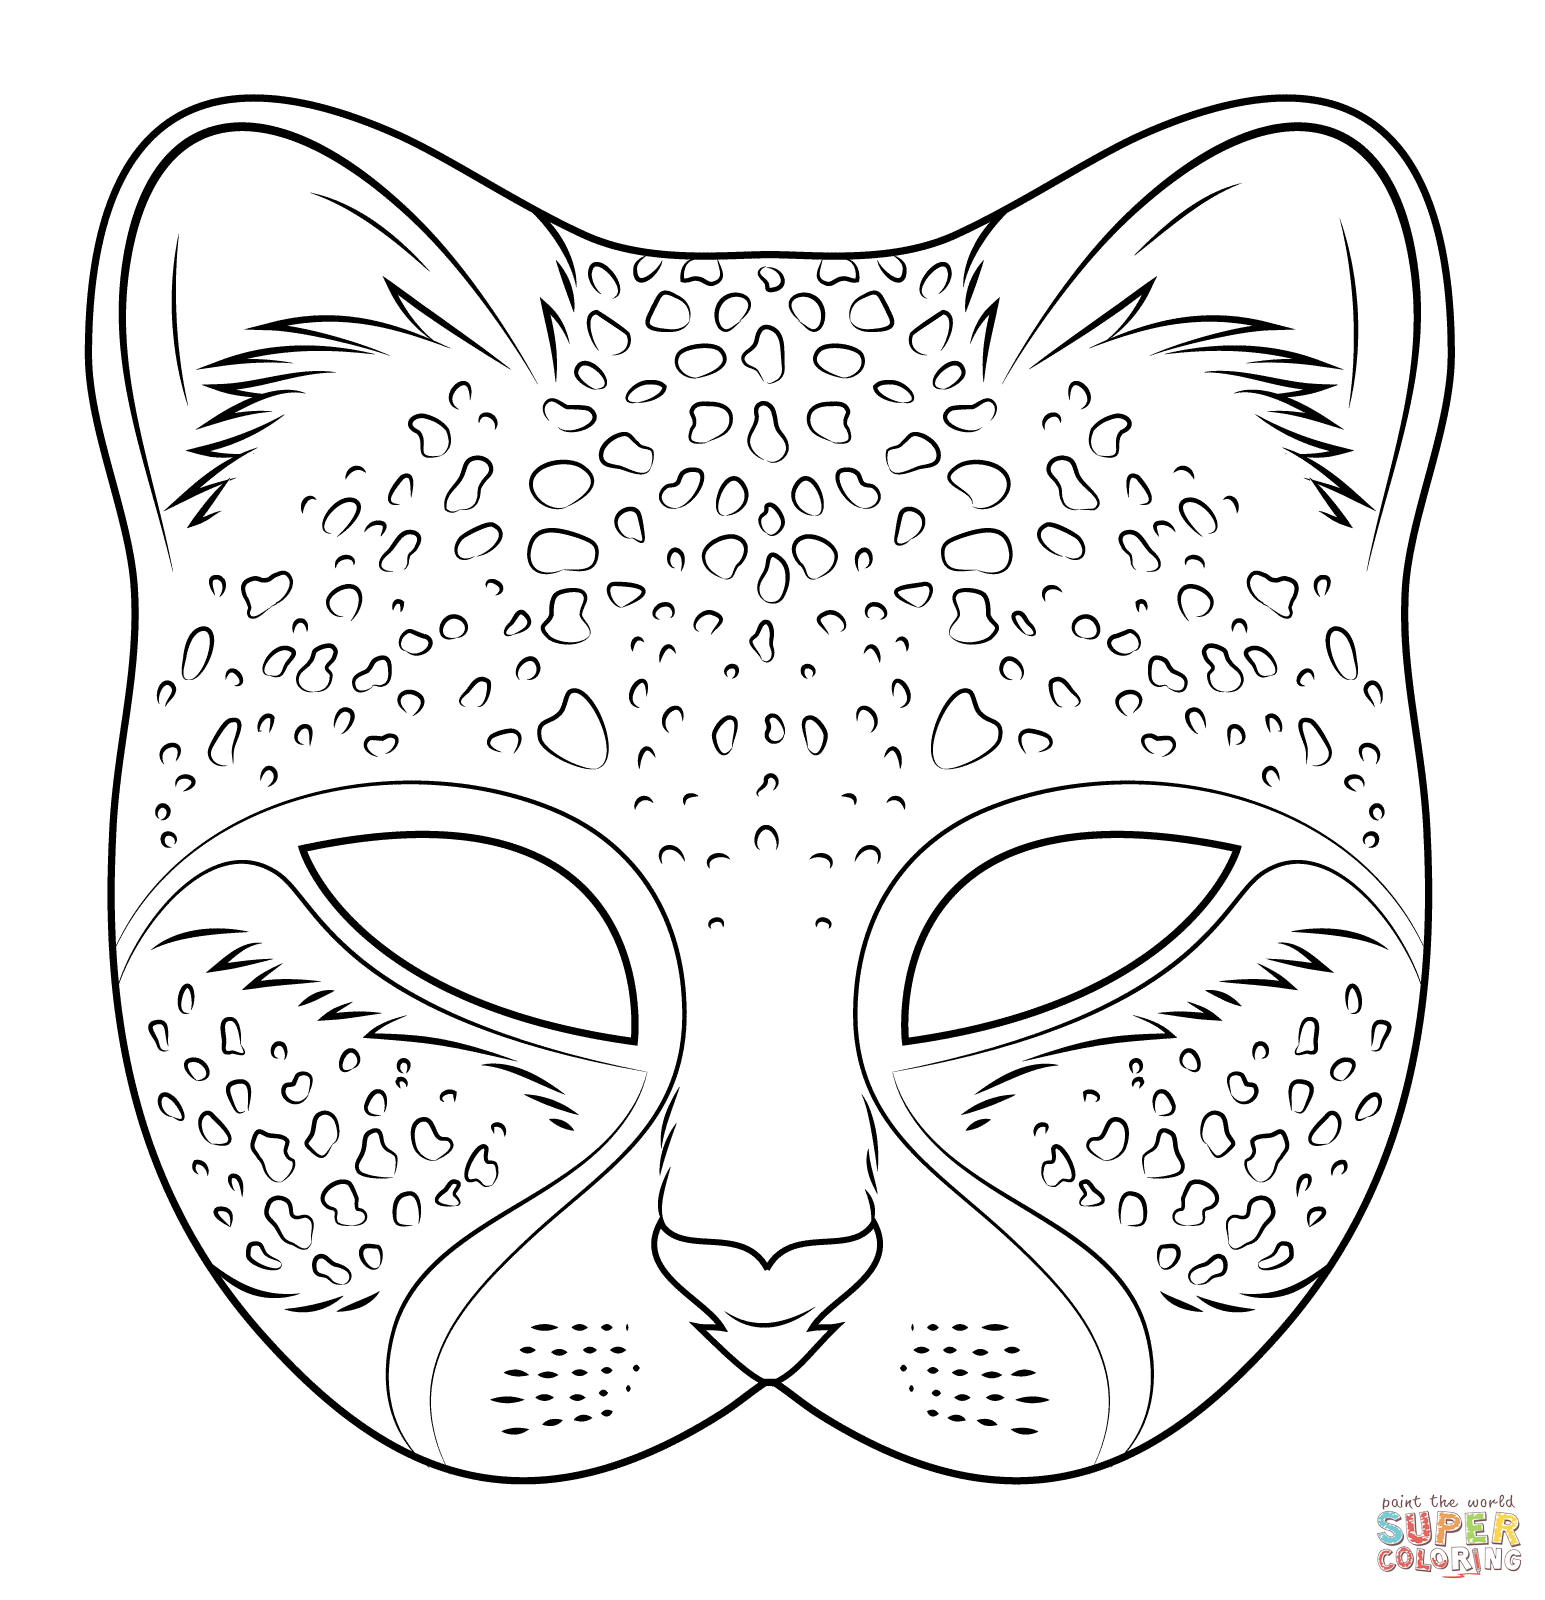 Cheetah Mask Super Coloring Crafts Pinterest Cheetahs